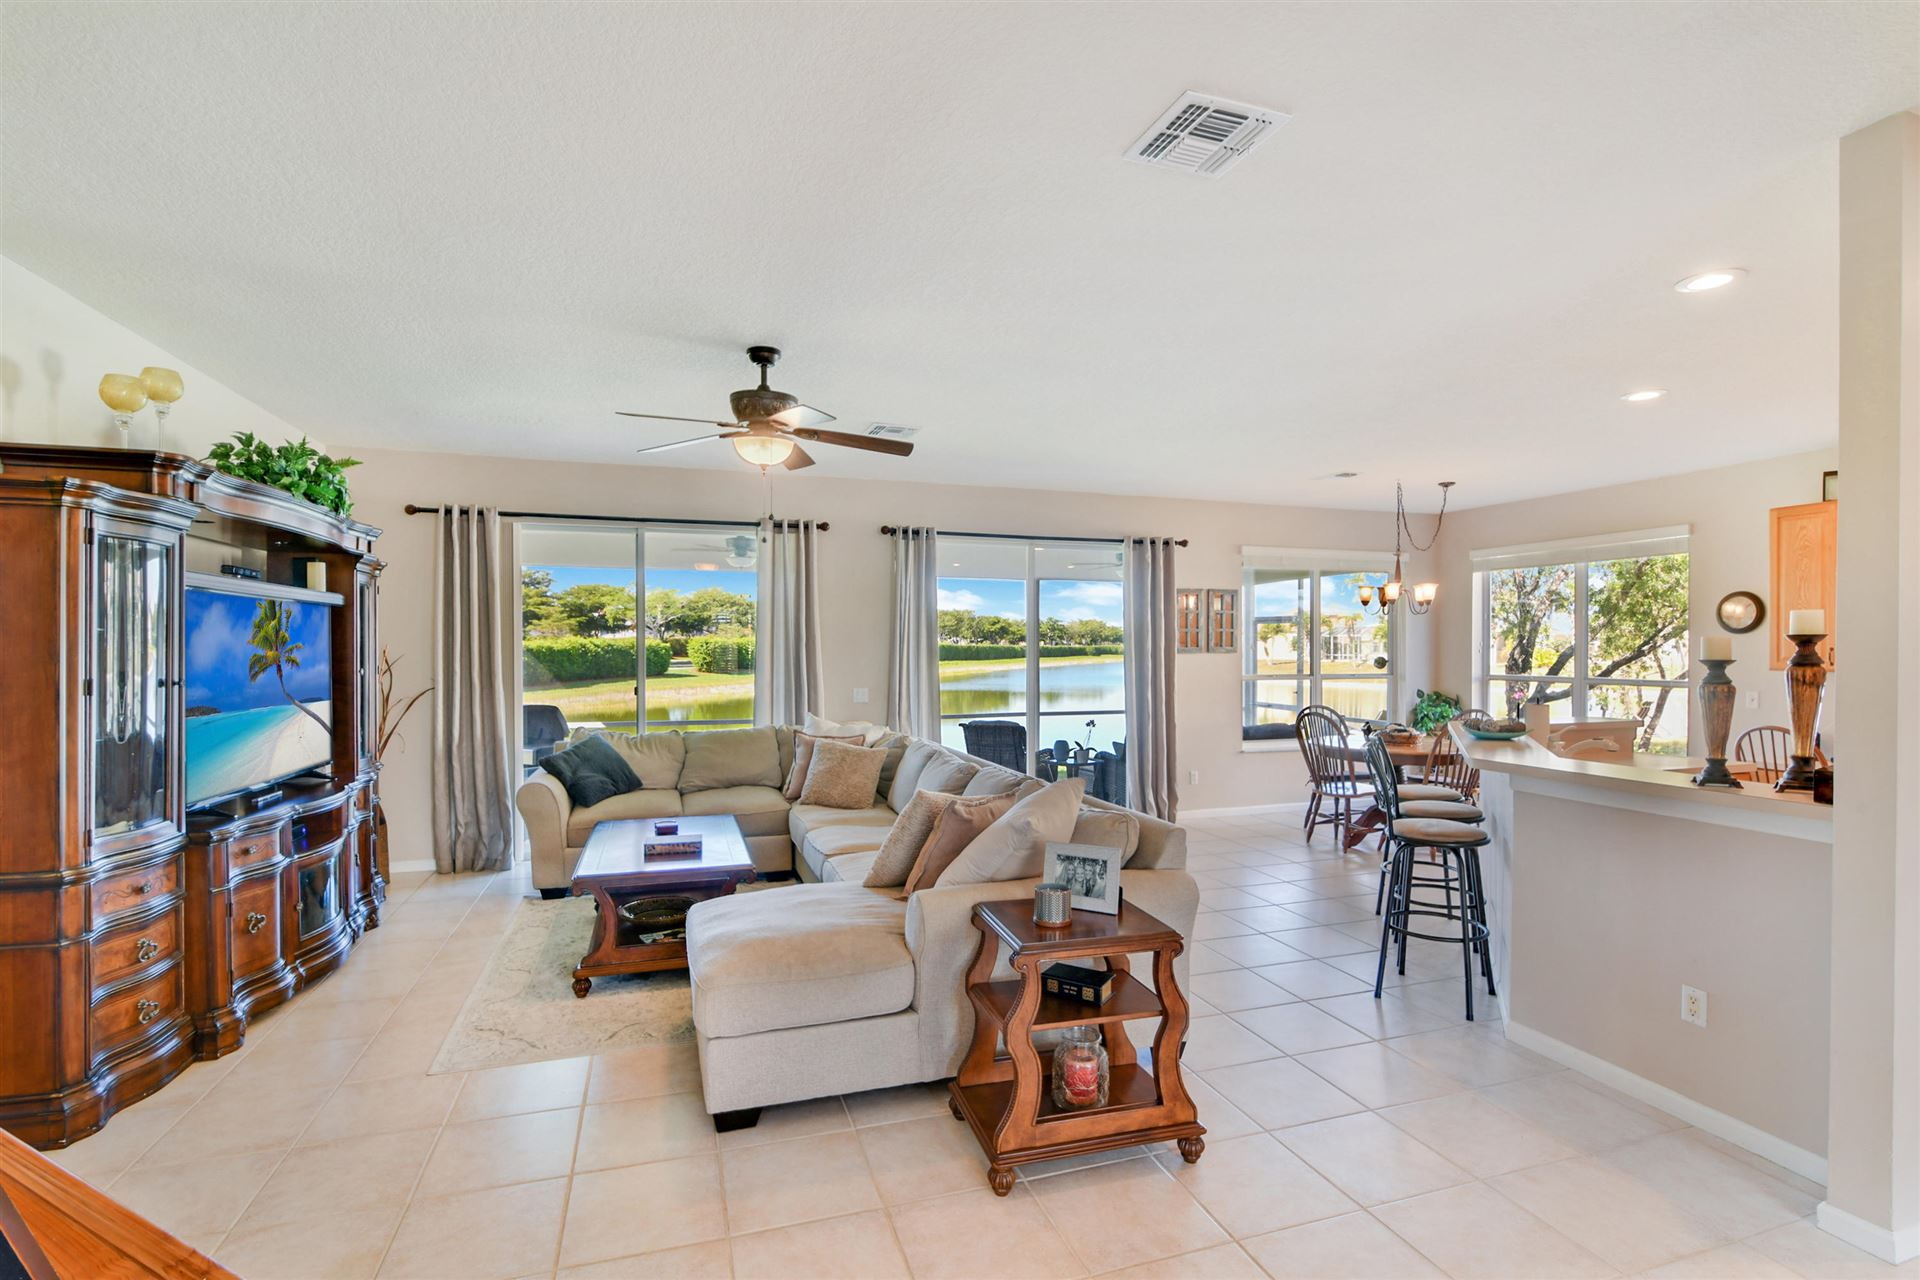 Photo of 12745 Tulipwood Circle, Boca Raton, FL 33428 (MLS # RX-10687893)